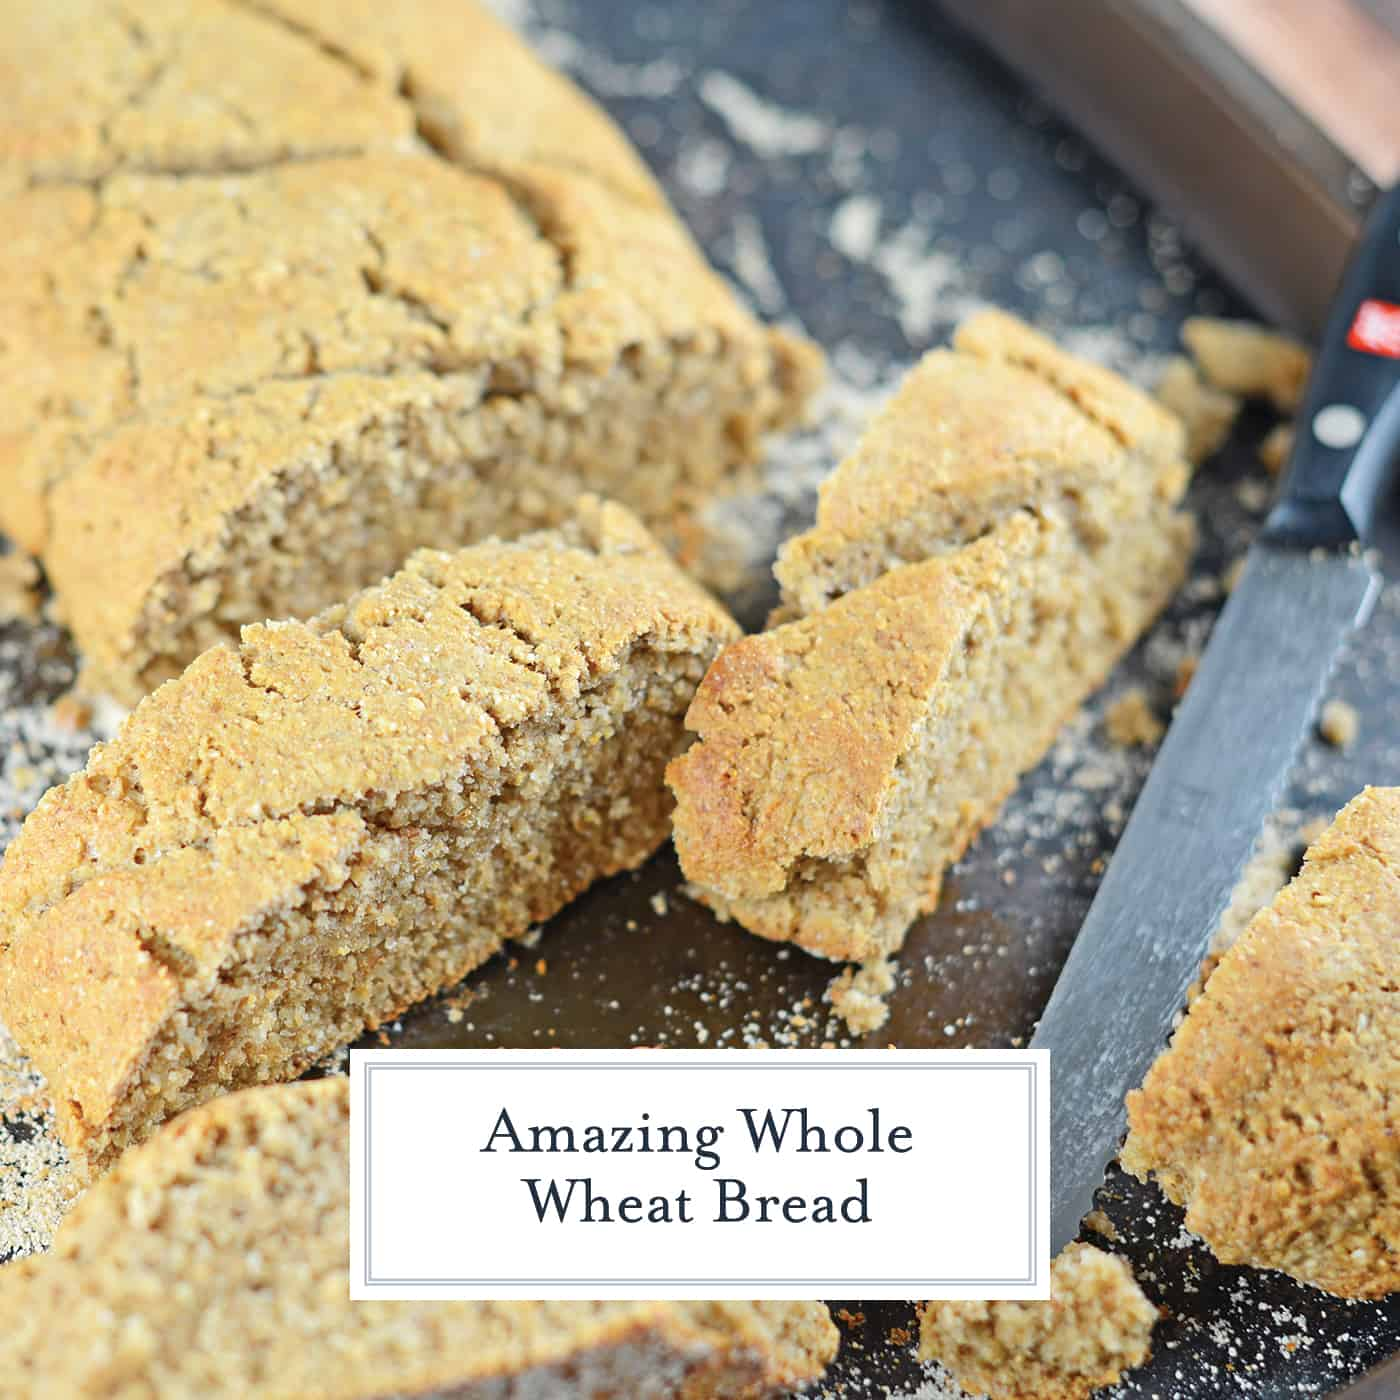 Whole Wheat Bread, homemade bread is not only healthier, it is also super easy to make! Only 30 minute hands-on for an impressive loaf of whole wheat bread. #homemadebread #wholewheatbreadrecipes www.savoryexperiments.com